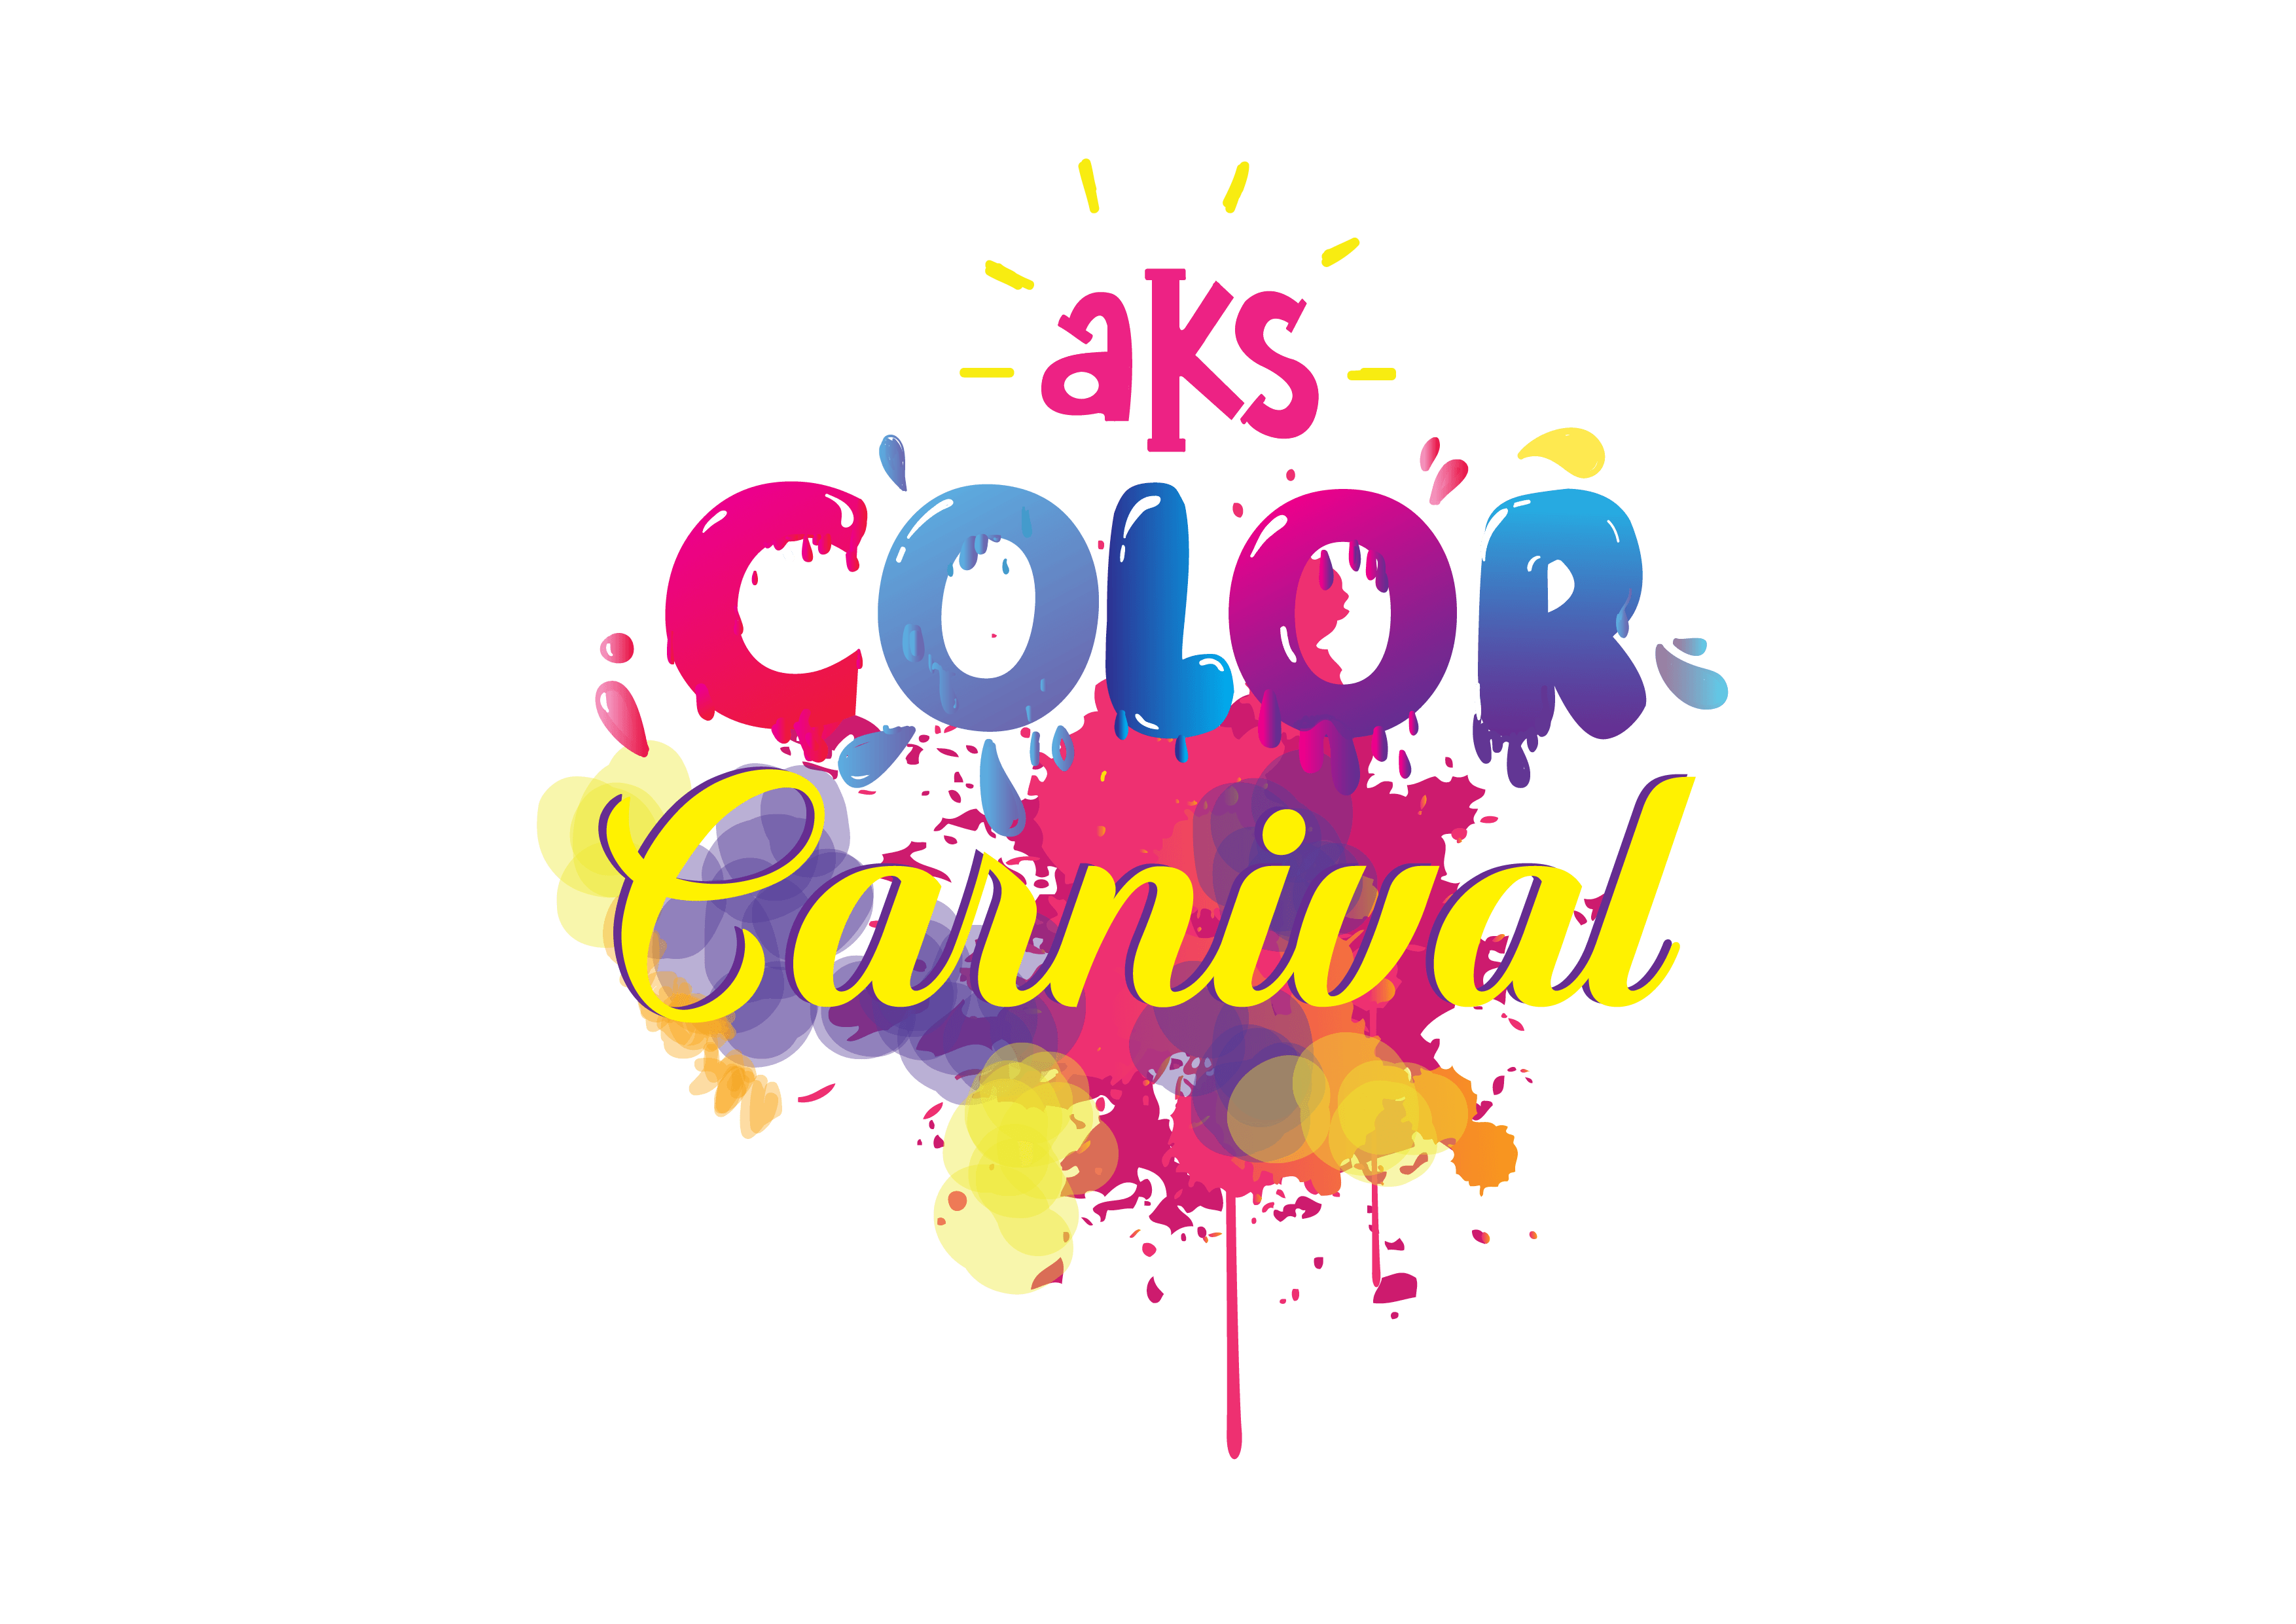 aks colour carnival 2018 everything you want to know